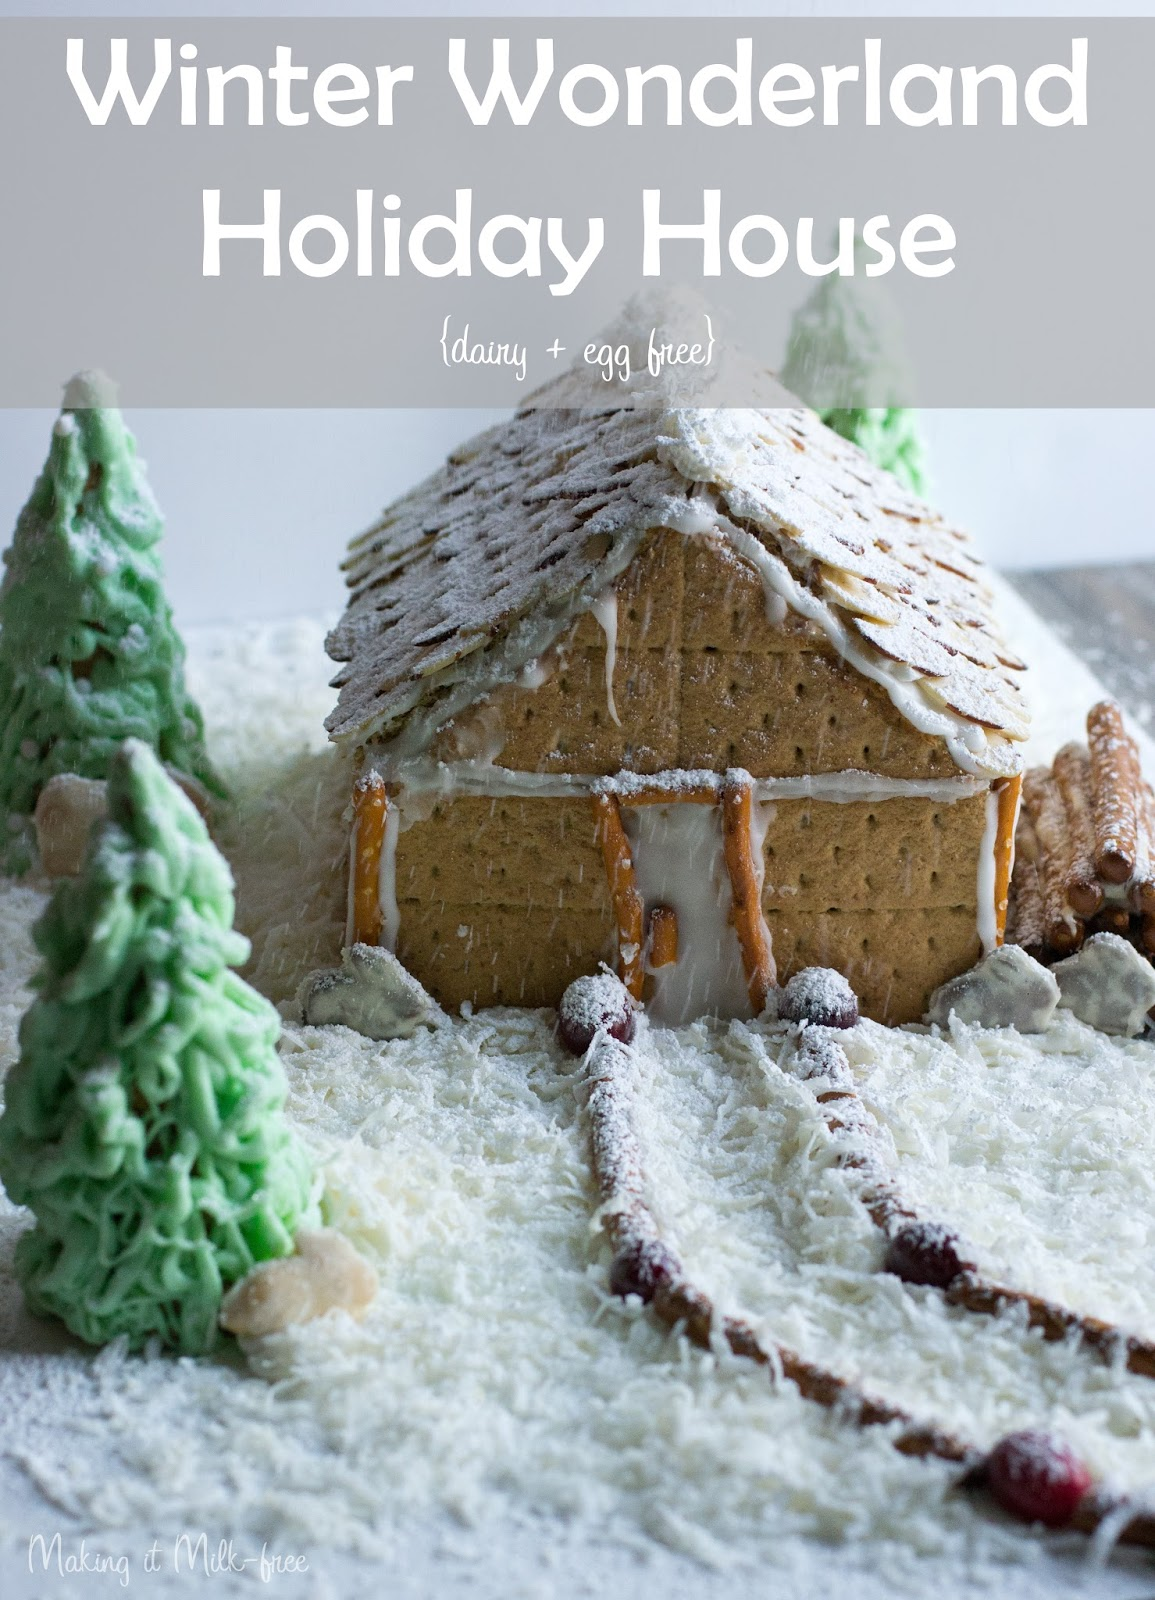 Winter Wonderland Holiday House | Making it Milk-free